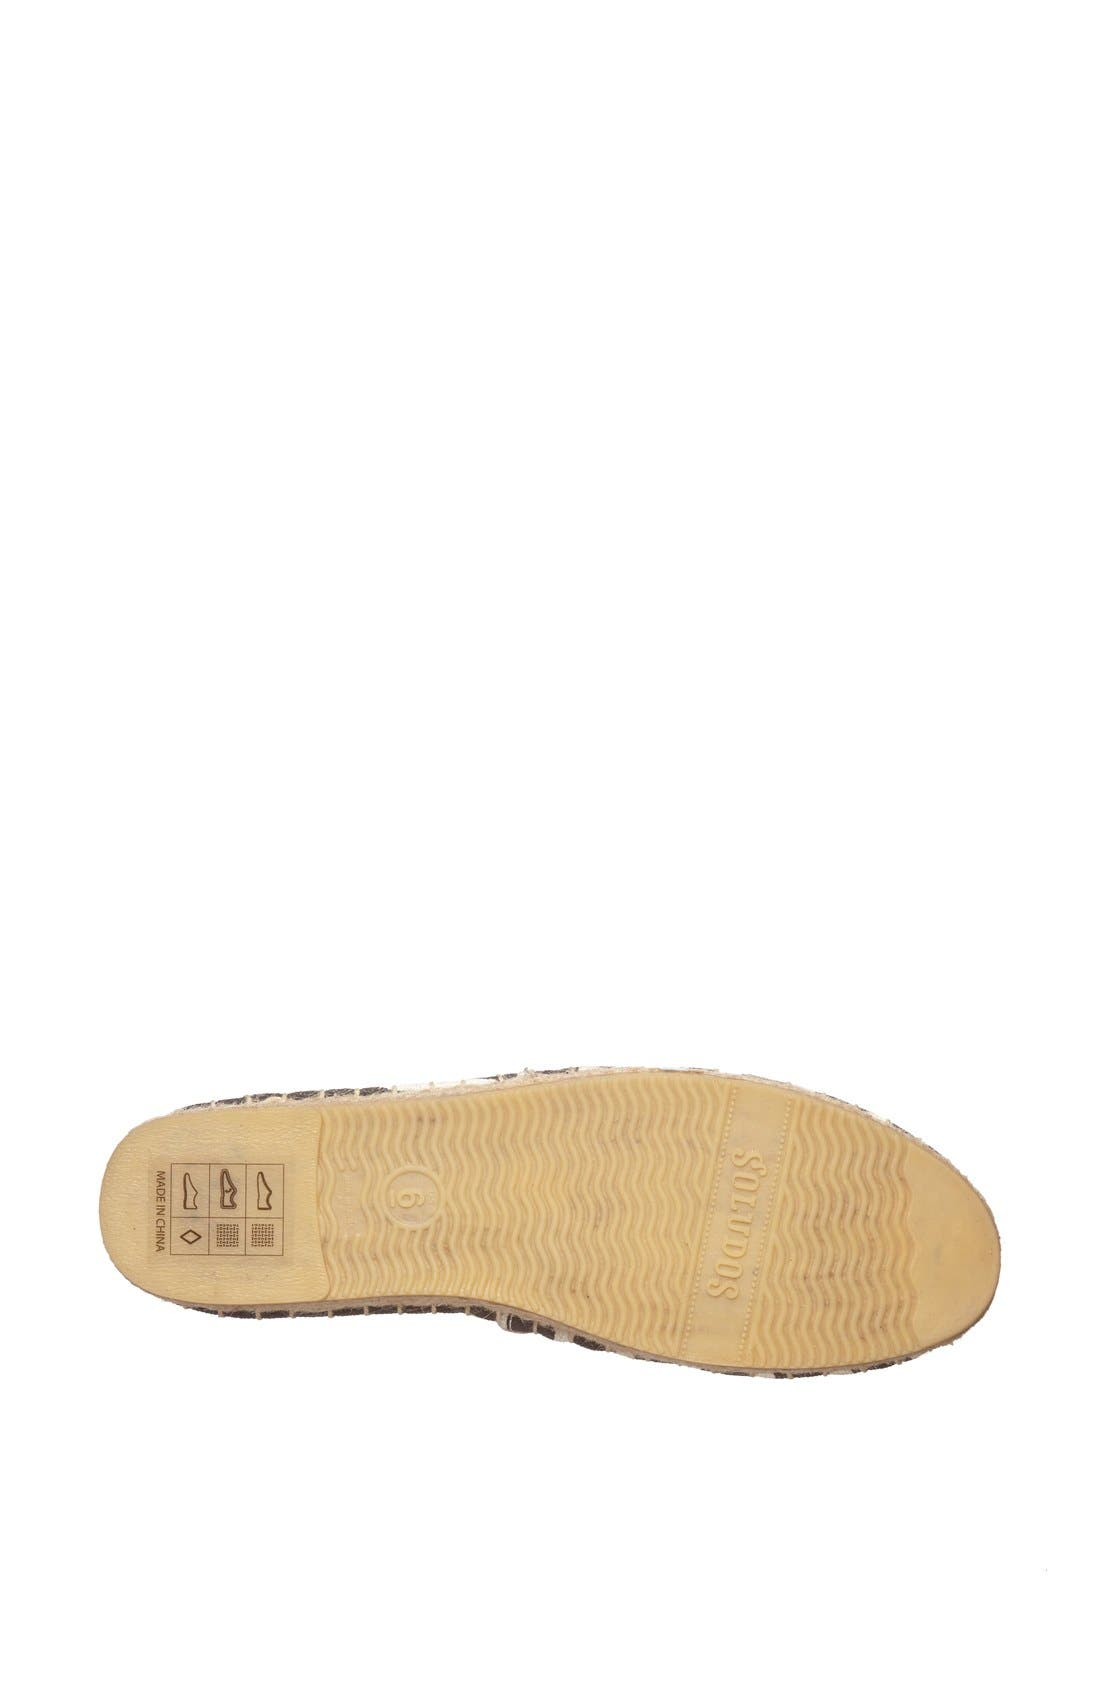 'Classic' Espadrille Slip-On,                             Alternate thumbnail 4, color,                             001